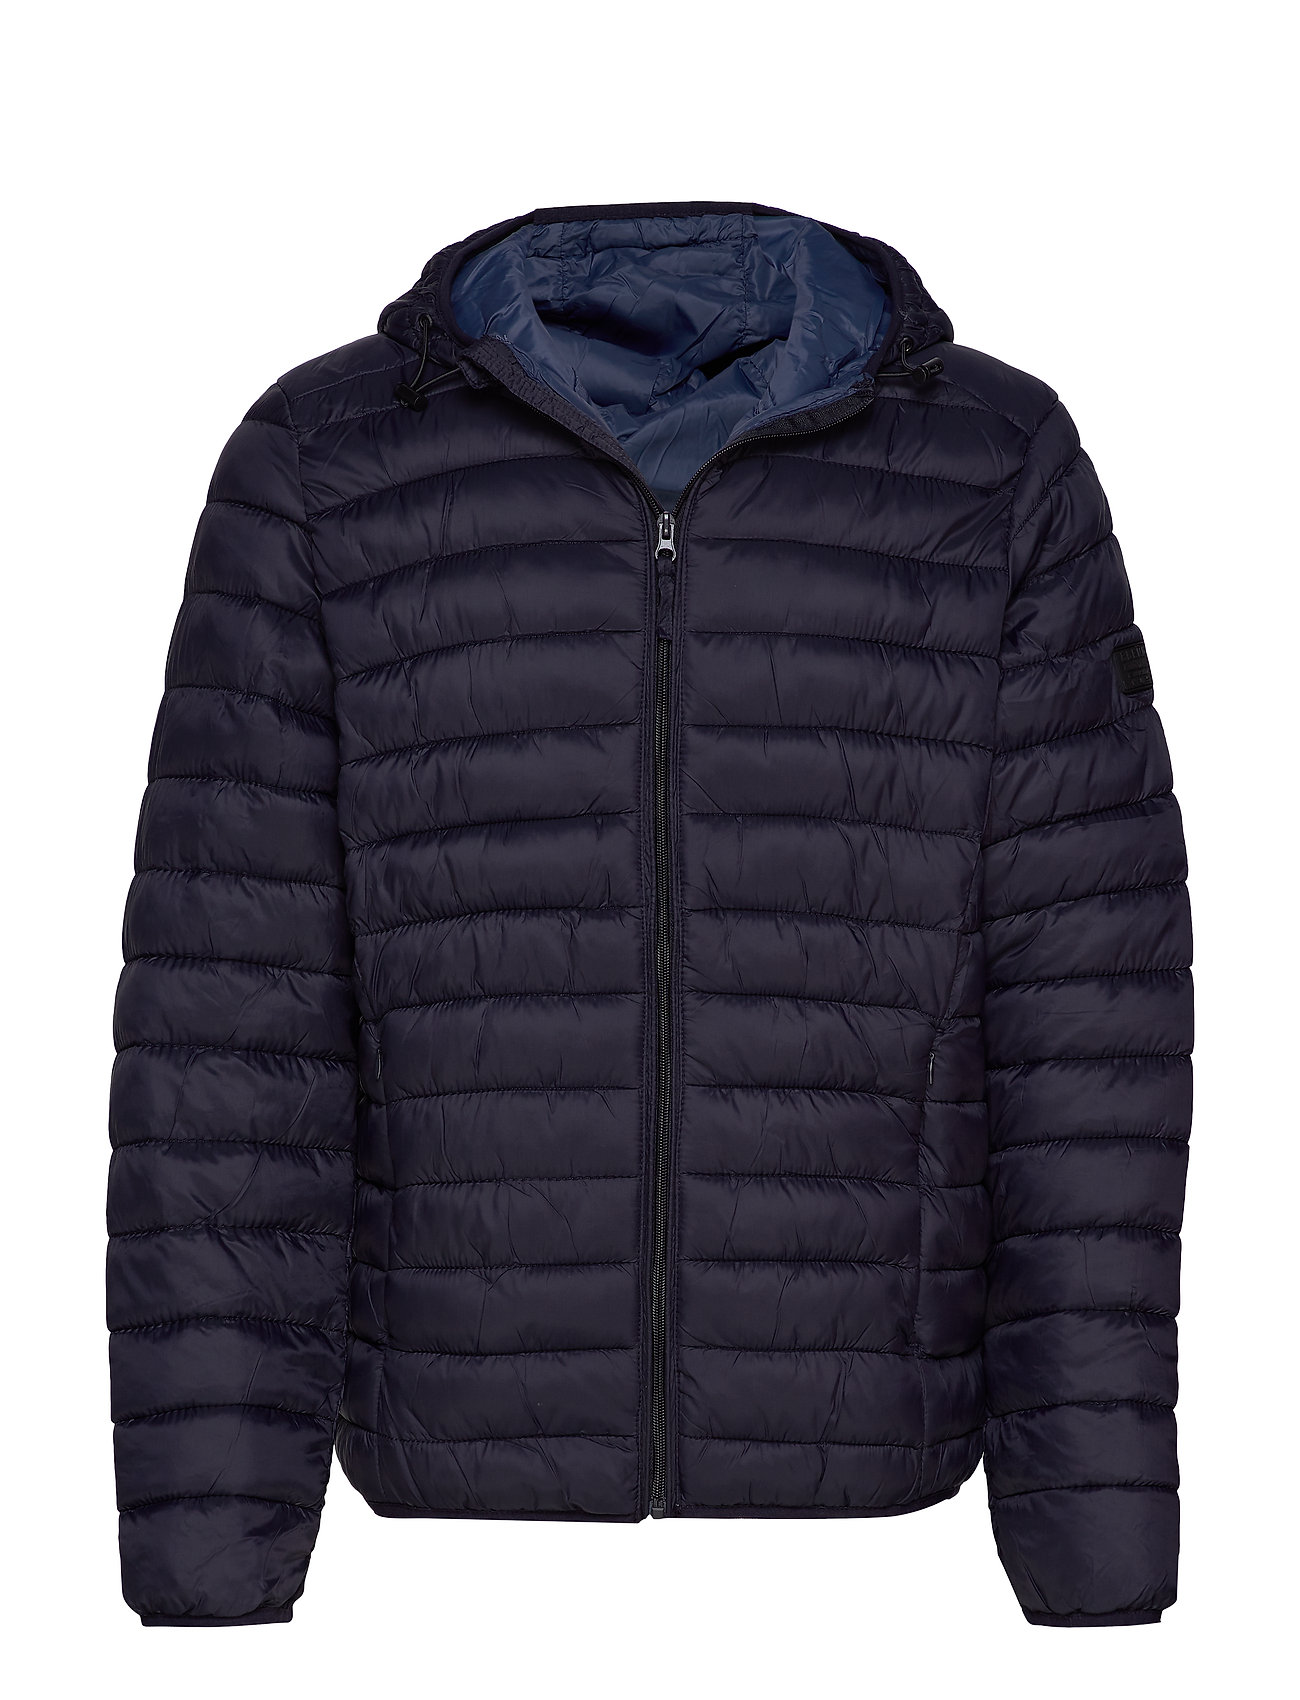 Blend Outerwear - DARK NAVY BLUE